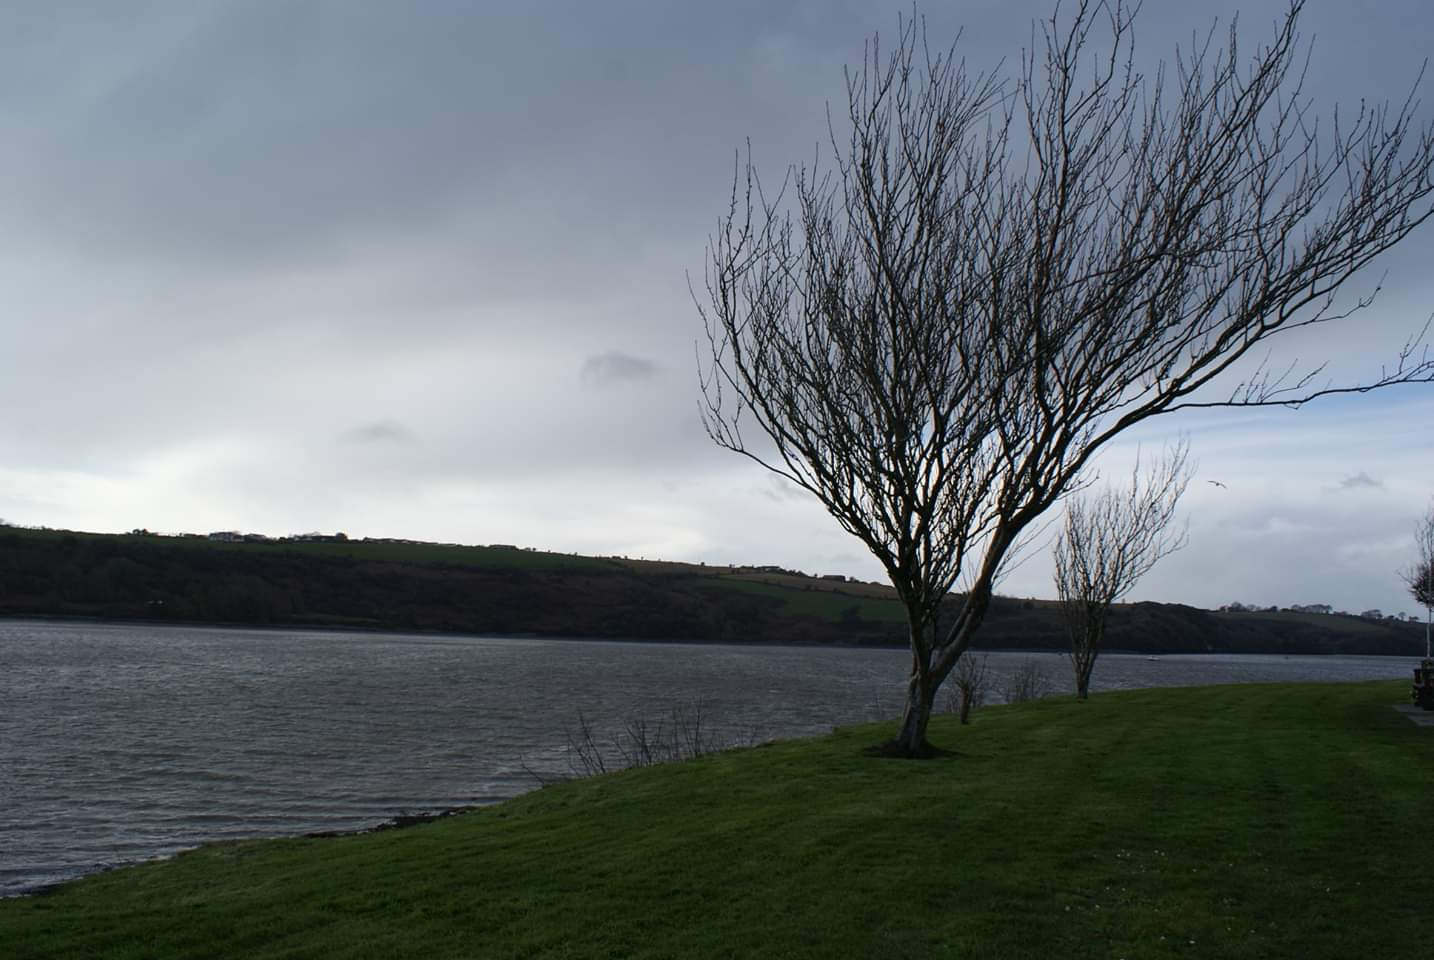 The River Bandon, Kinsale right before a storm  Photo provided by Patrick Salerno '21